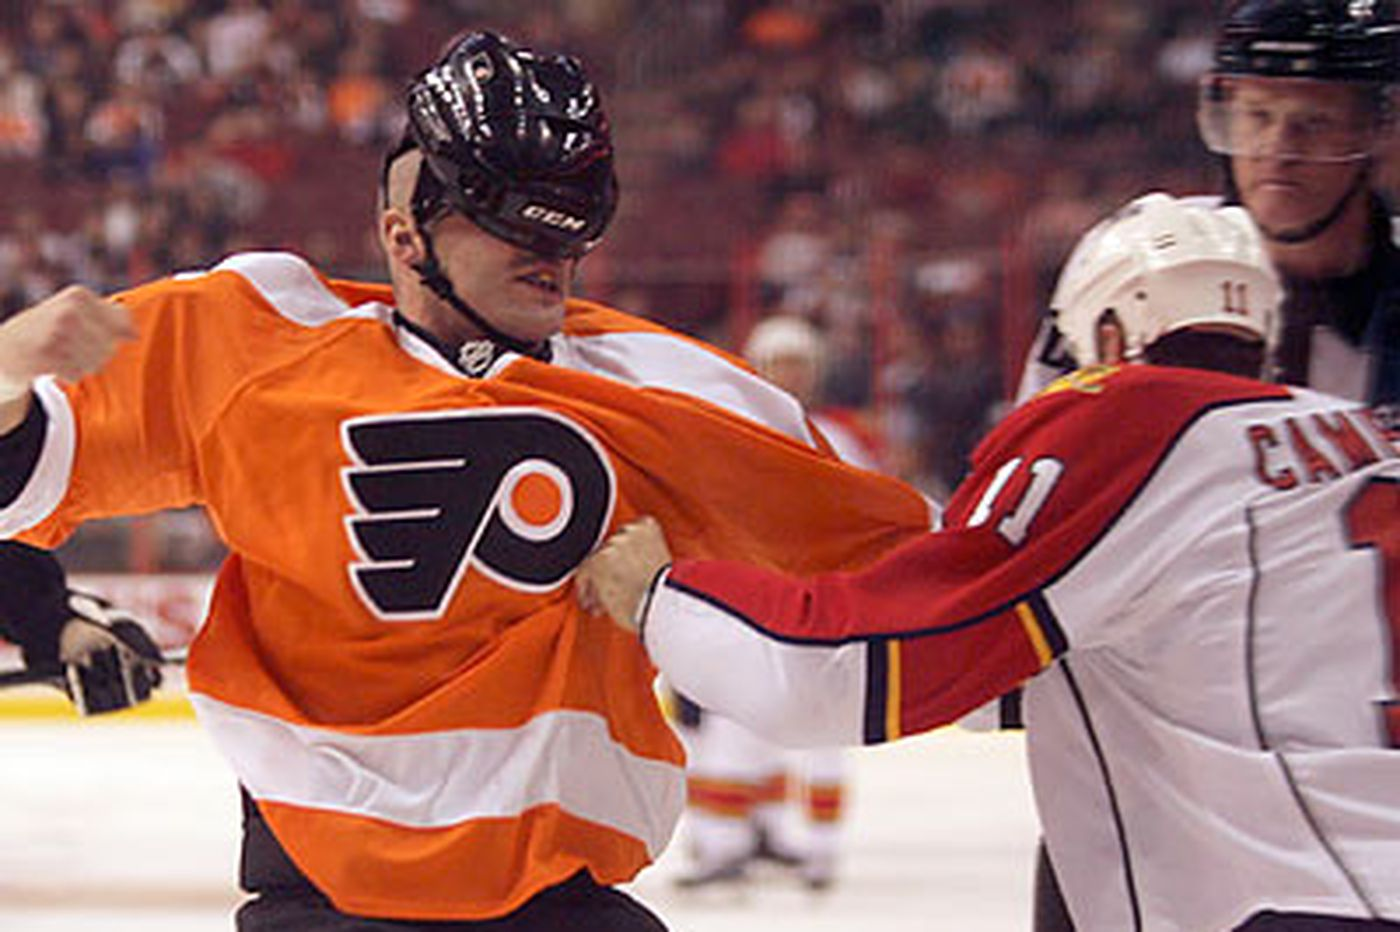 Scrums aside, Flyers still punchless in loss to Panthers